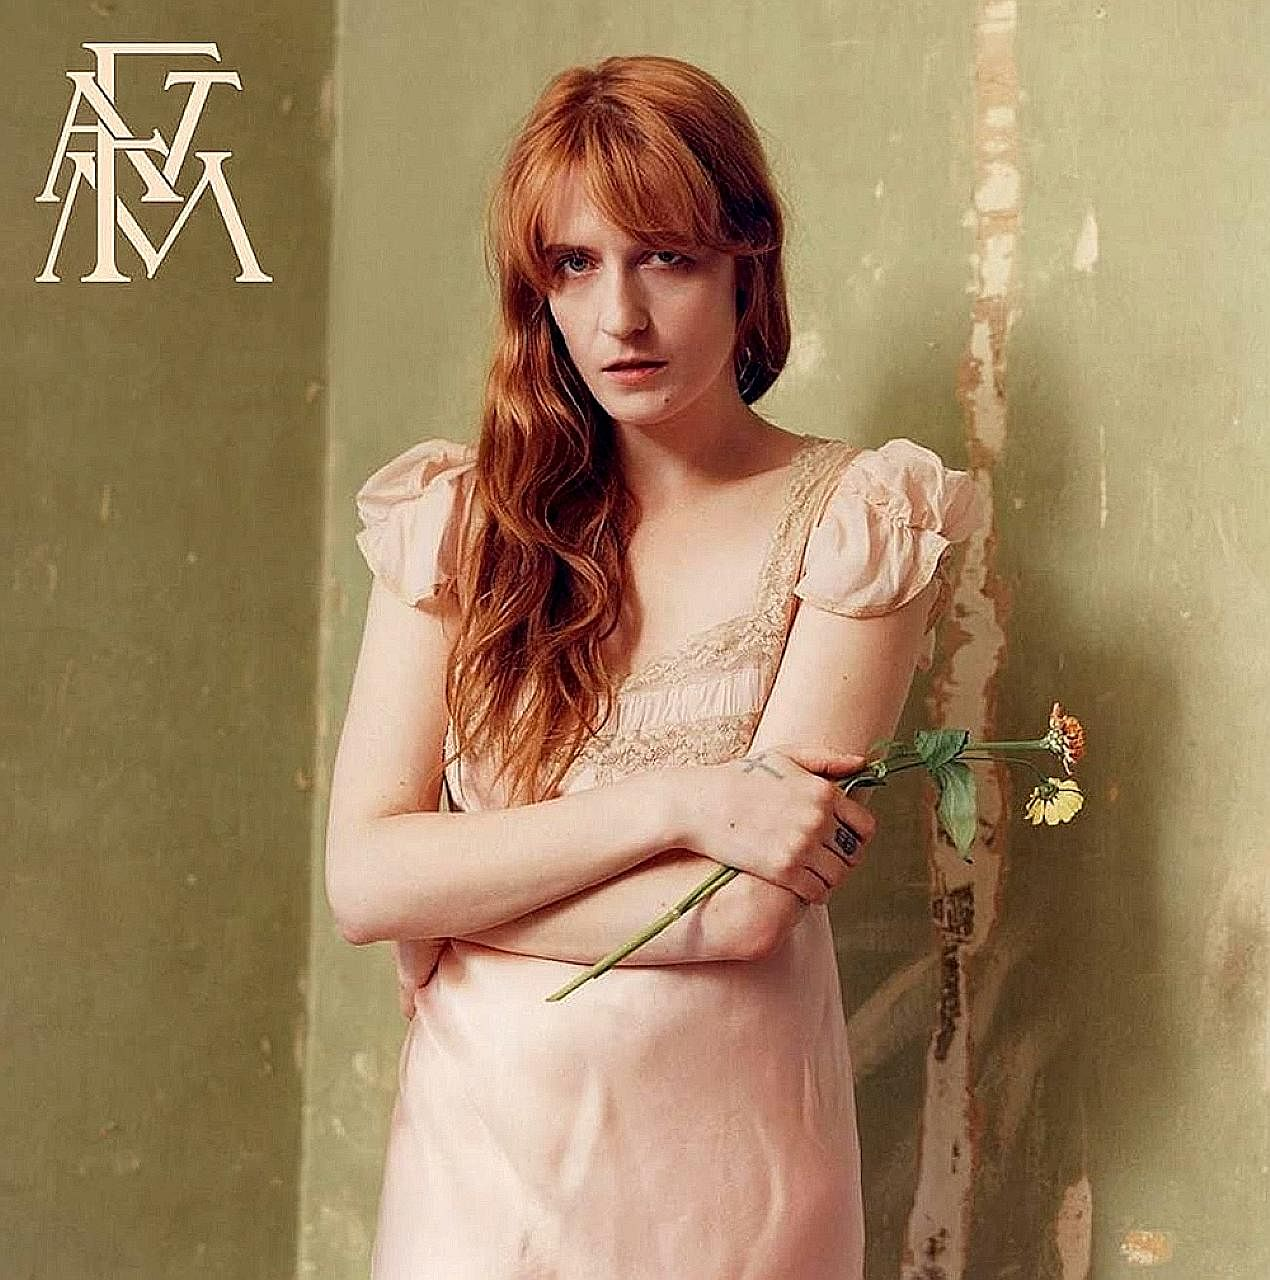 Singer Florence Welch (above) opens up about her life on her band's fourth studio album.